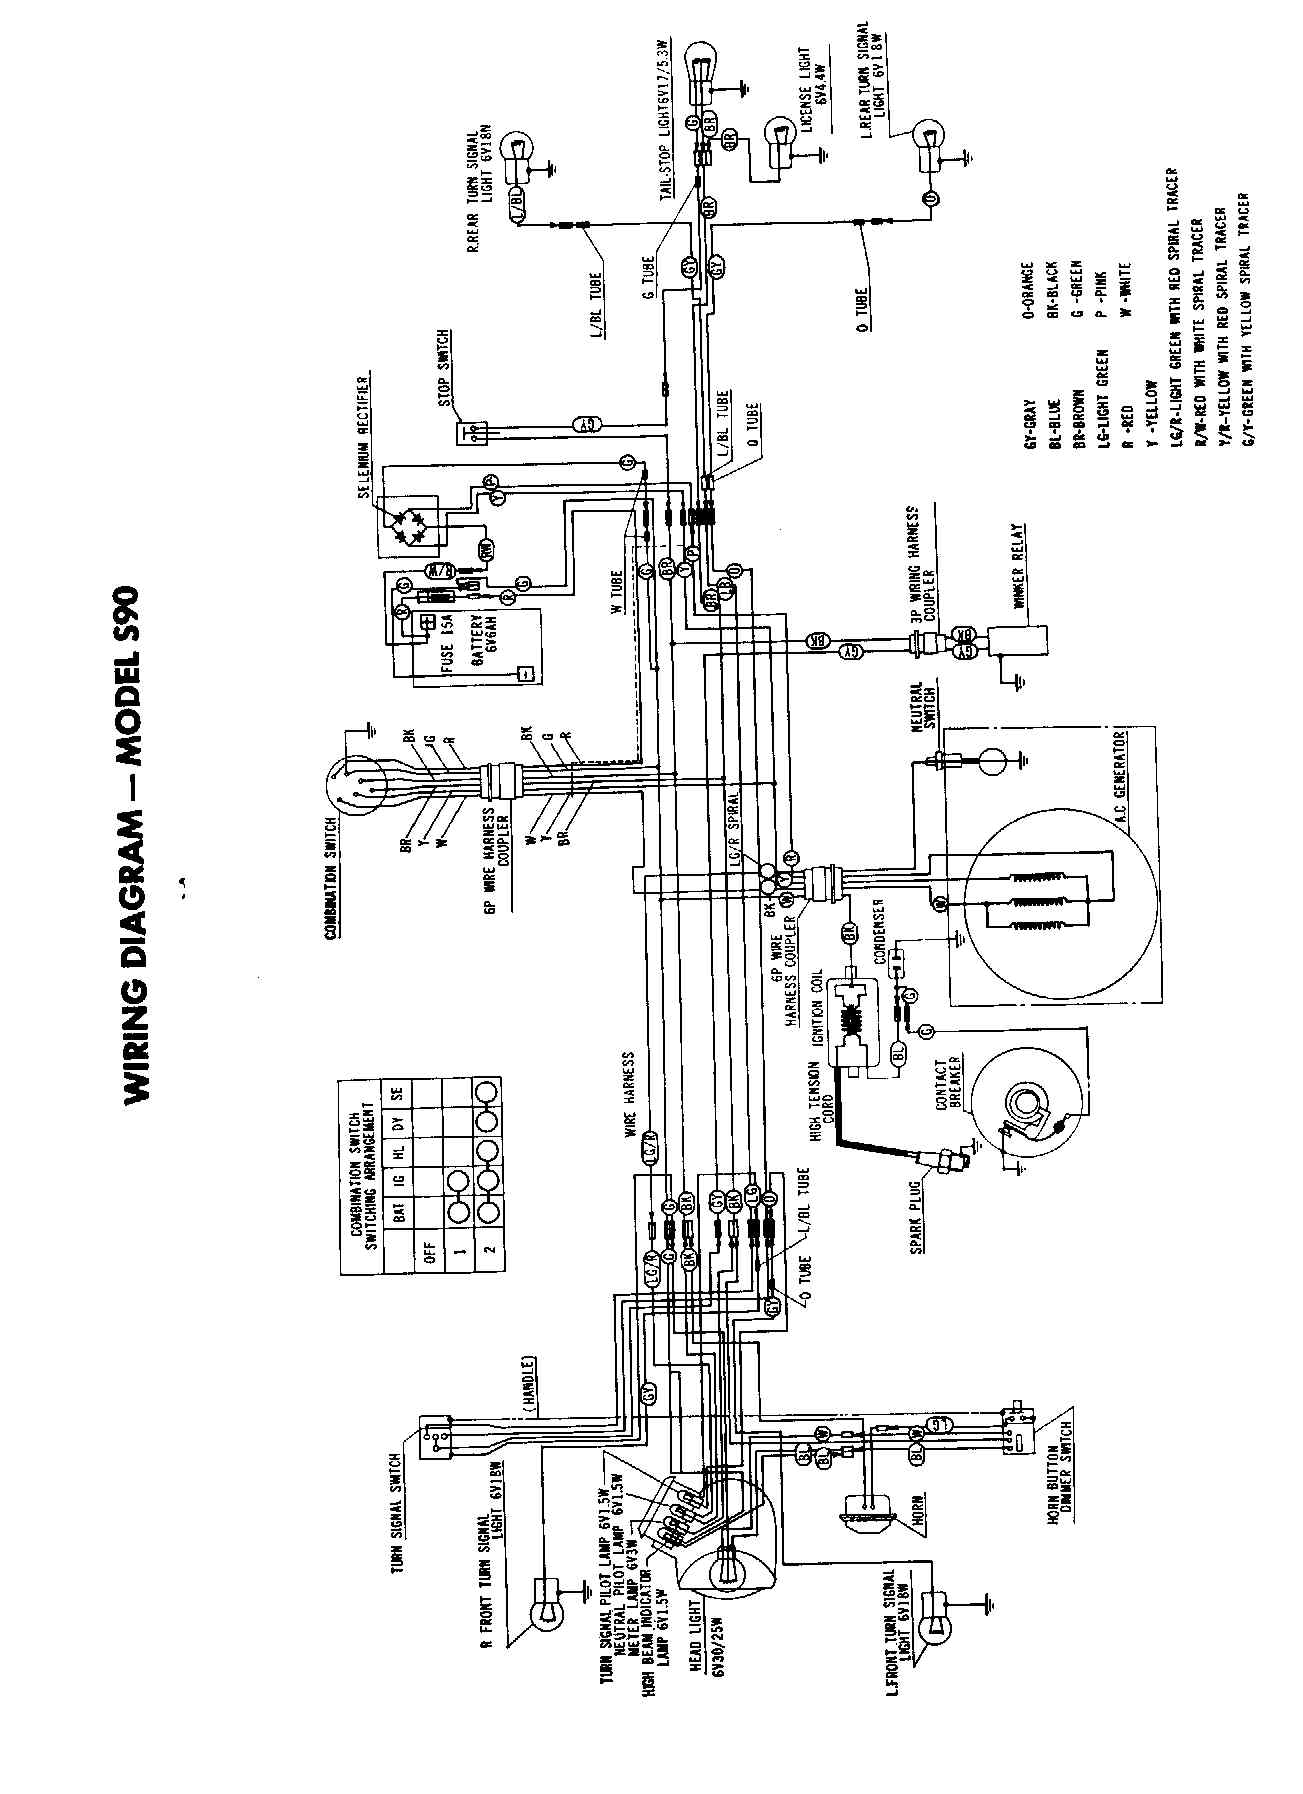 Wiring Diagram For Honda Xr200